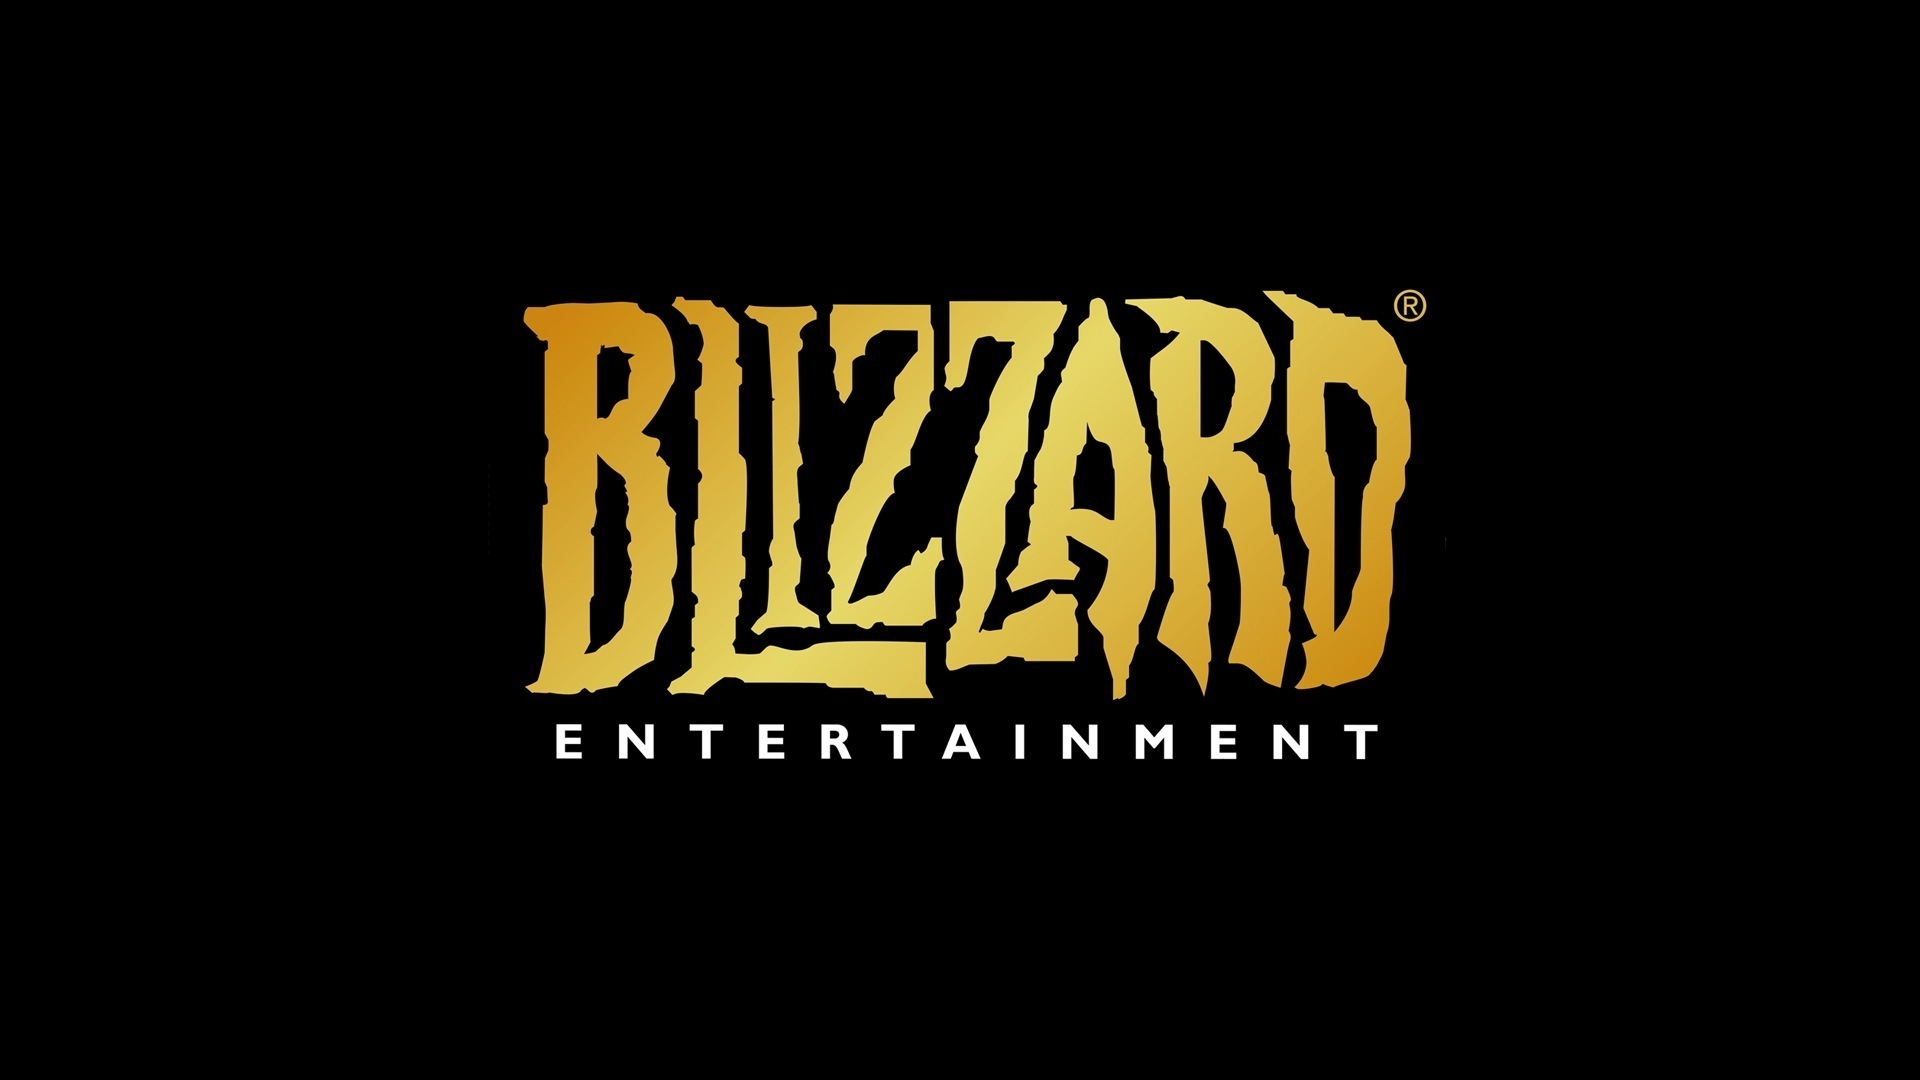 Desktop blizzard entertainment developers Blizzard Wallpapers HD 1920x1080